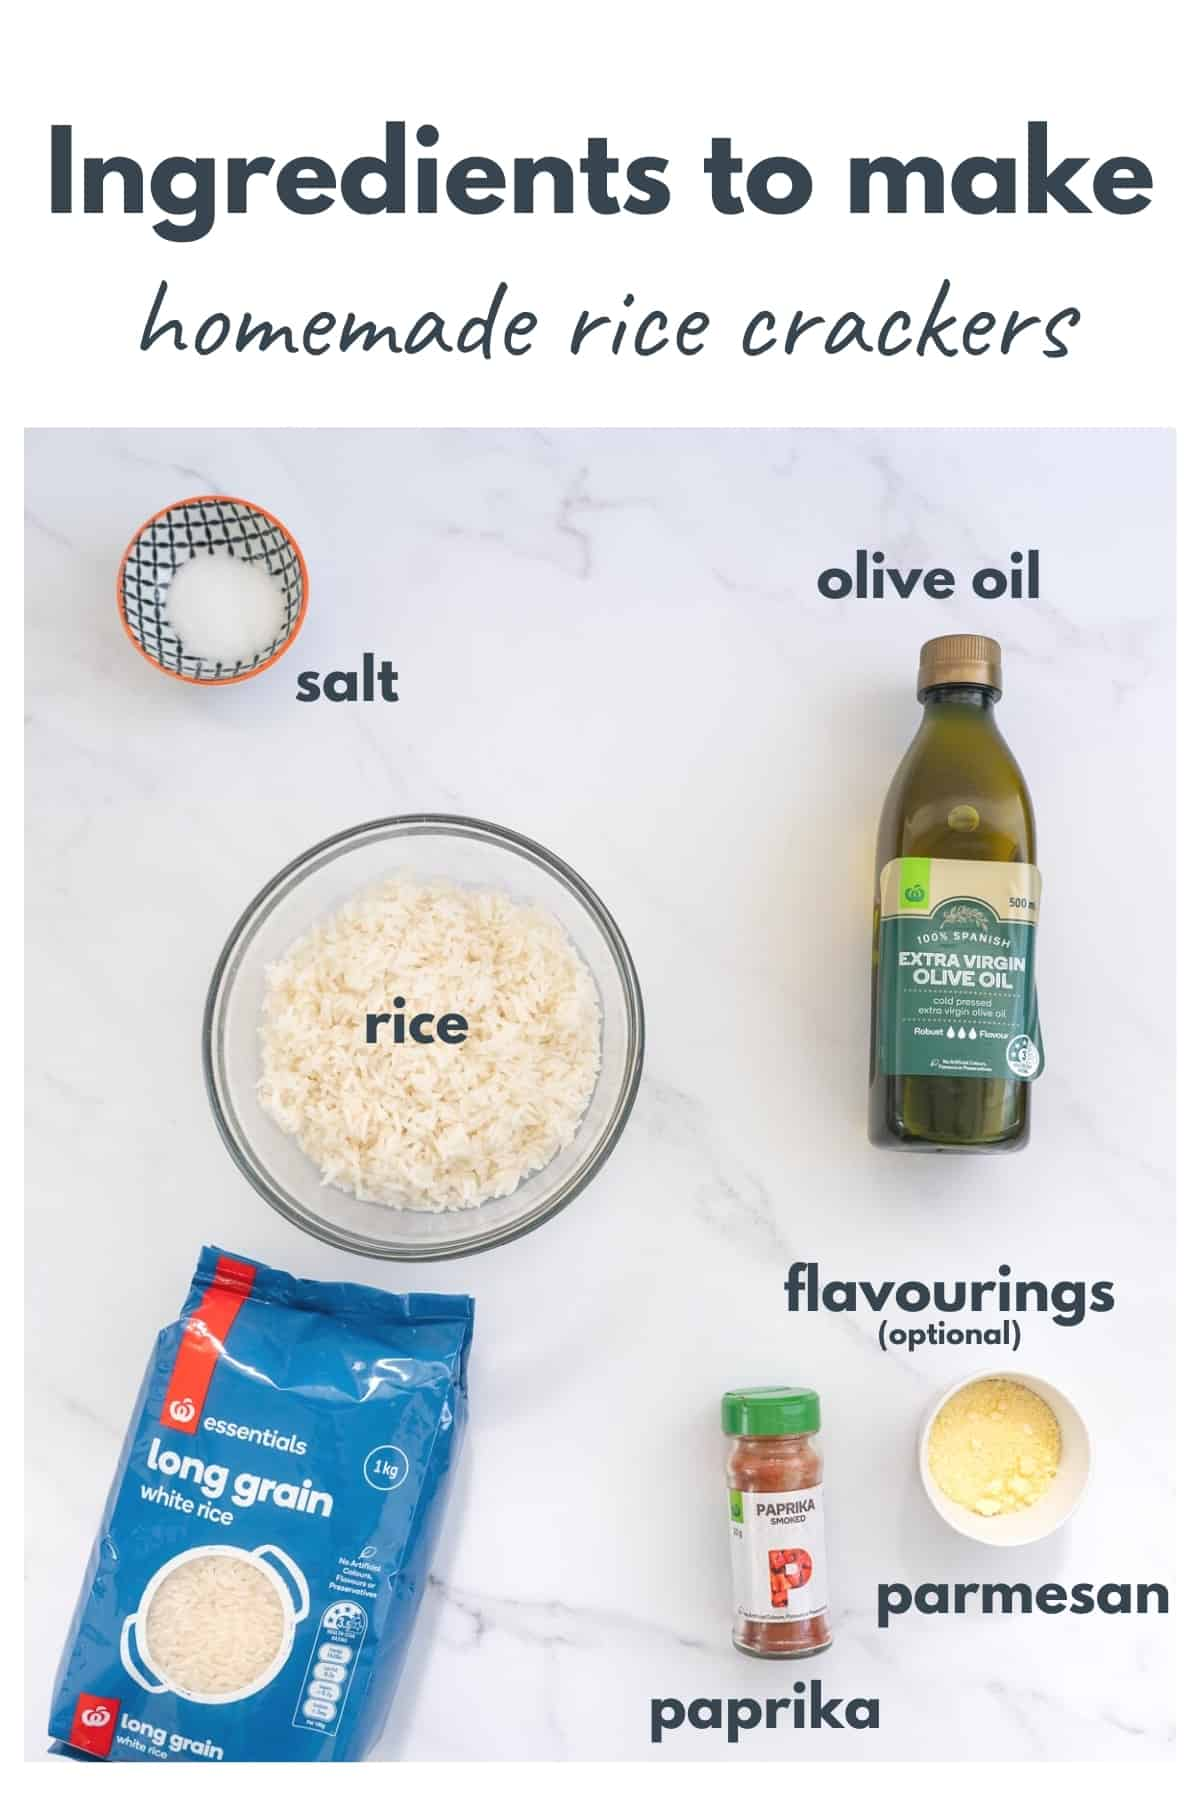 The ingredients to make rice crackers laid out on a bench with text overlay